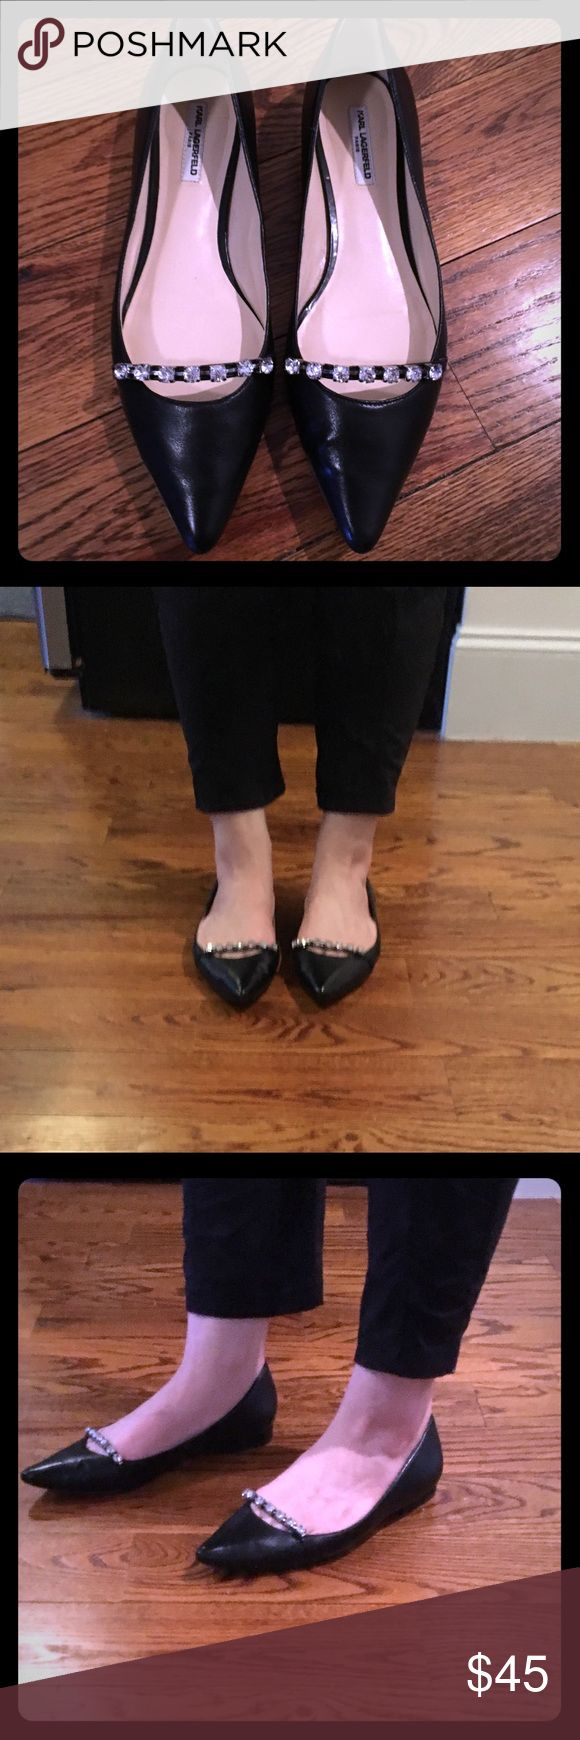 Karl Lagerfeld Paris Colette Leather Blk Flat -9.5 Karl Lagerfeld Paris Colette Leather Flat in black. Only worn once! A touch of glitter adds a sharp style to an iconic pointy-toe flat to create a flattering silhouette. Karl Lagerfeld Shoes Flats & Loafers